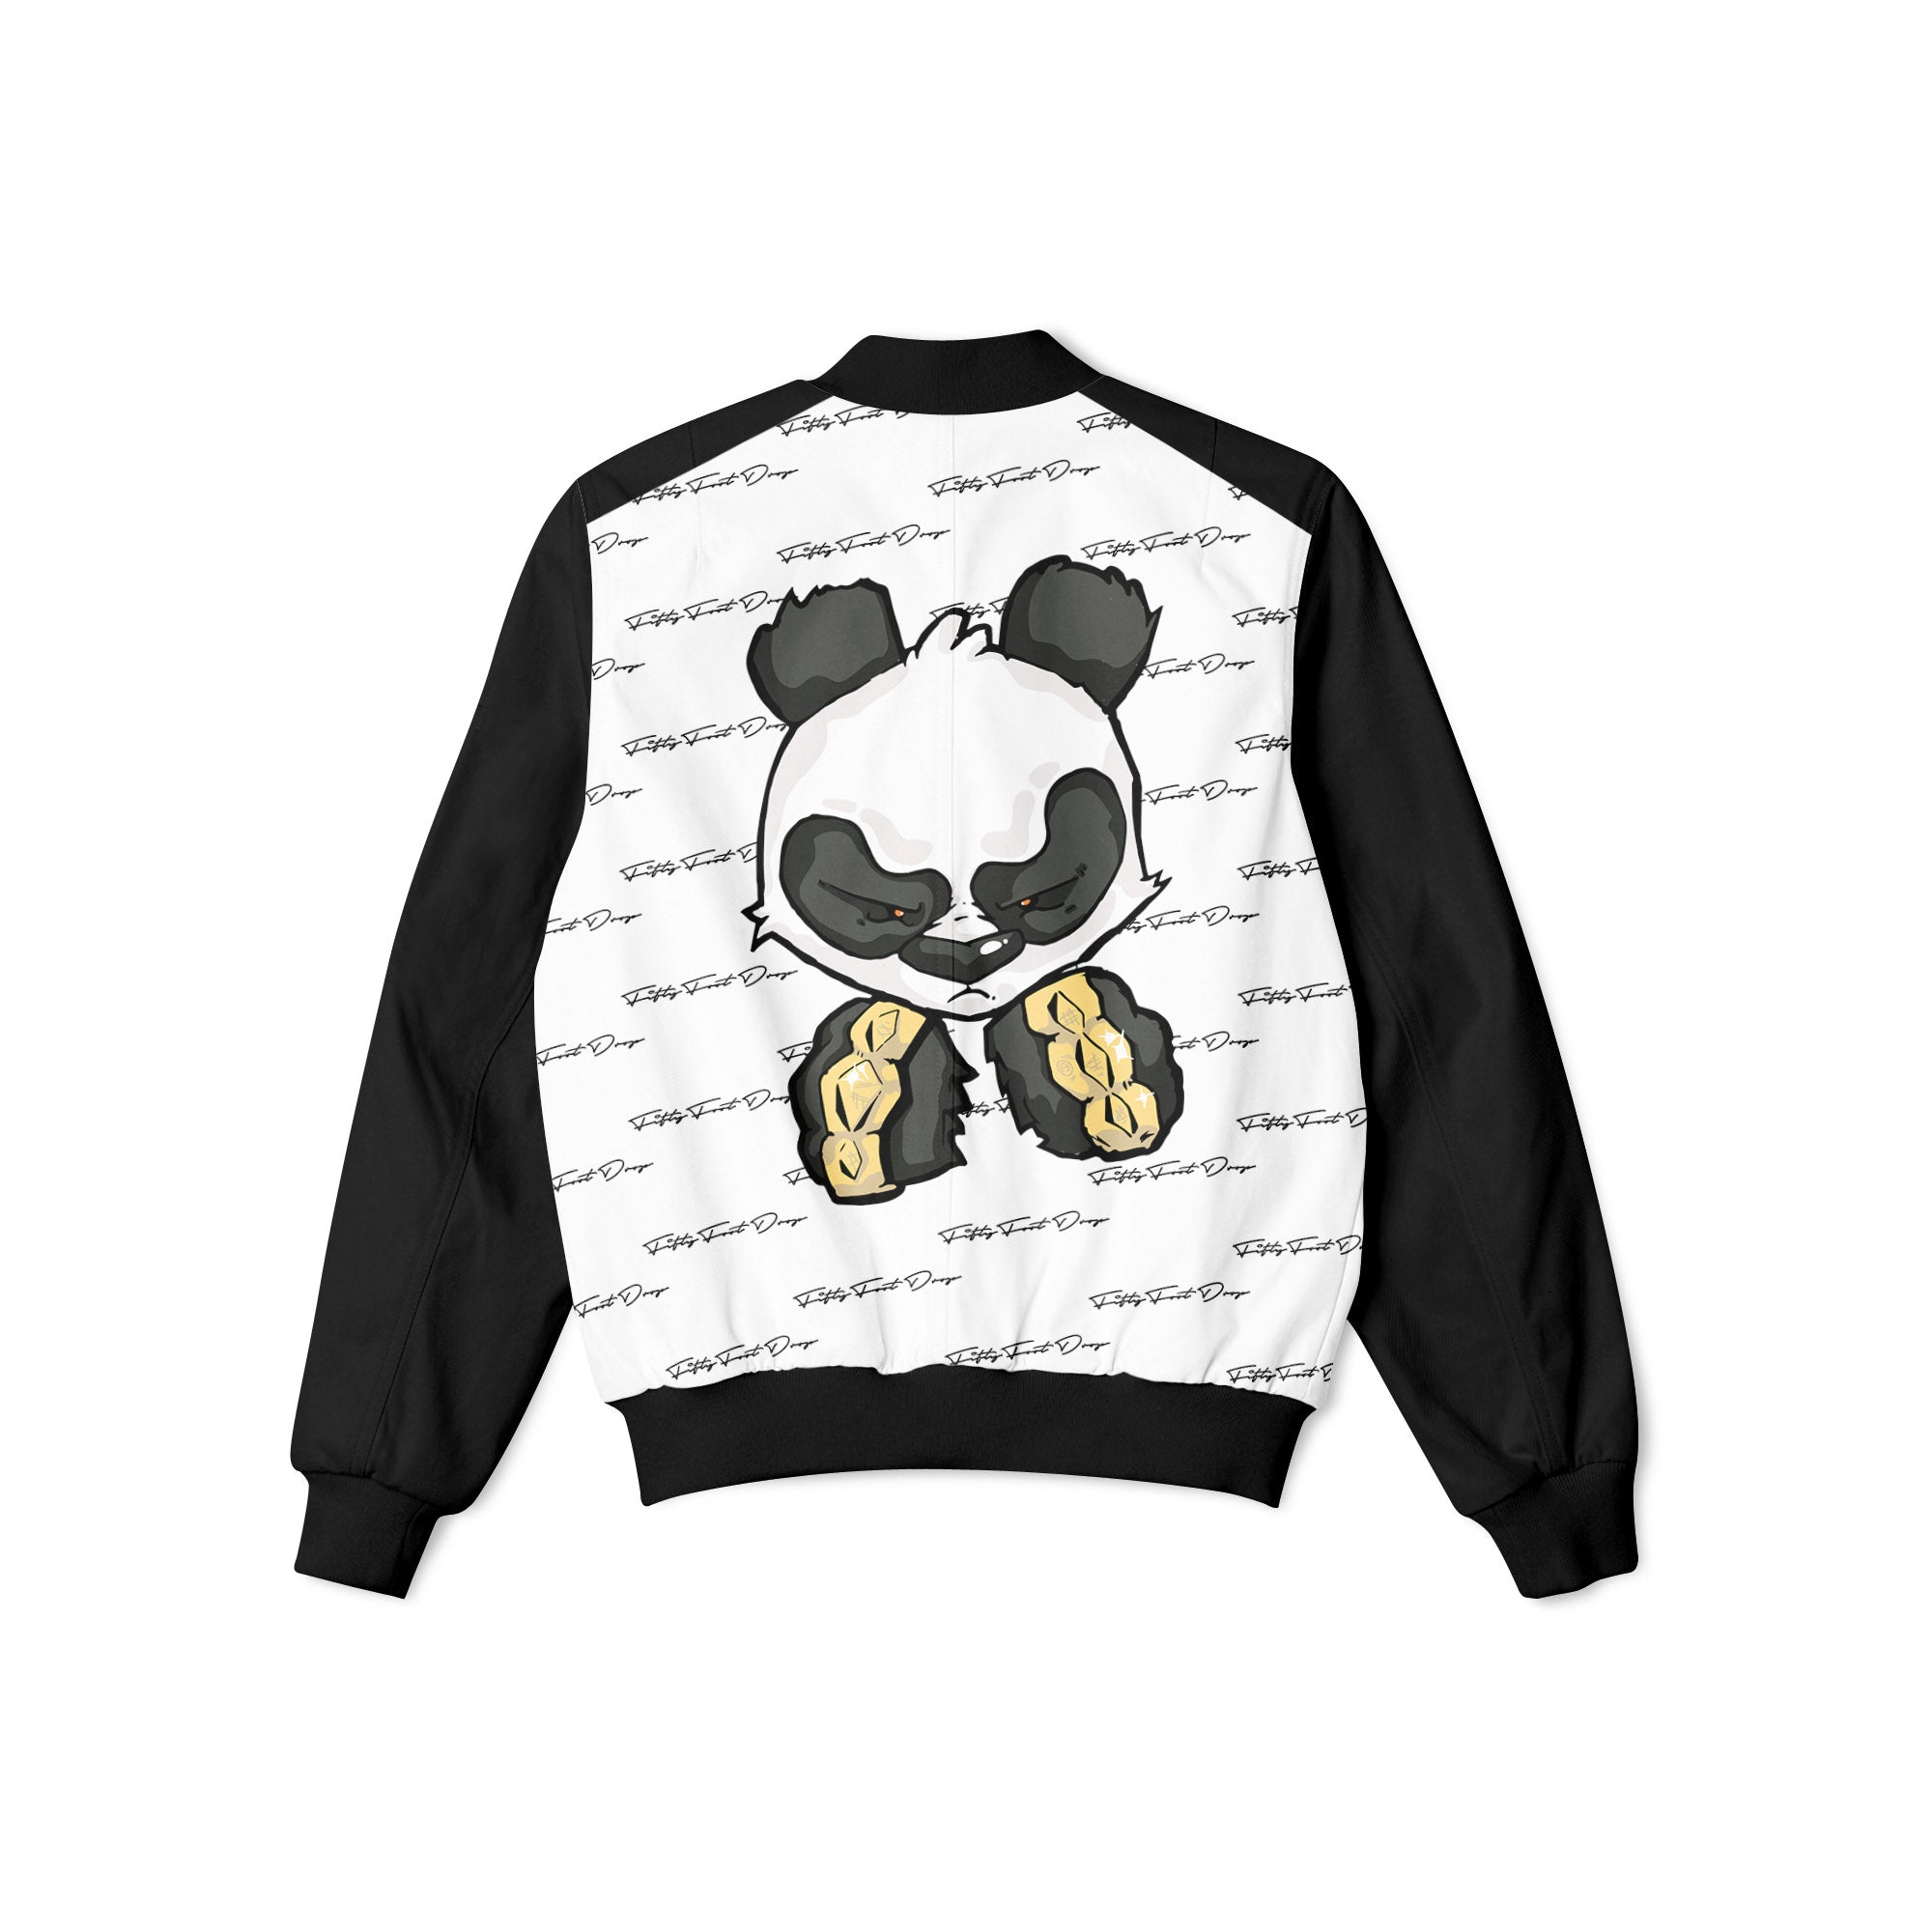 Custom Panda Jacket & Bag  Fifty Foot Drop  fresh-on-road.myshopify.com Fifty Foot Drop